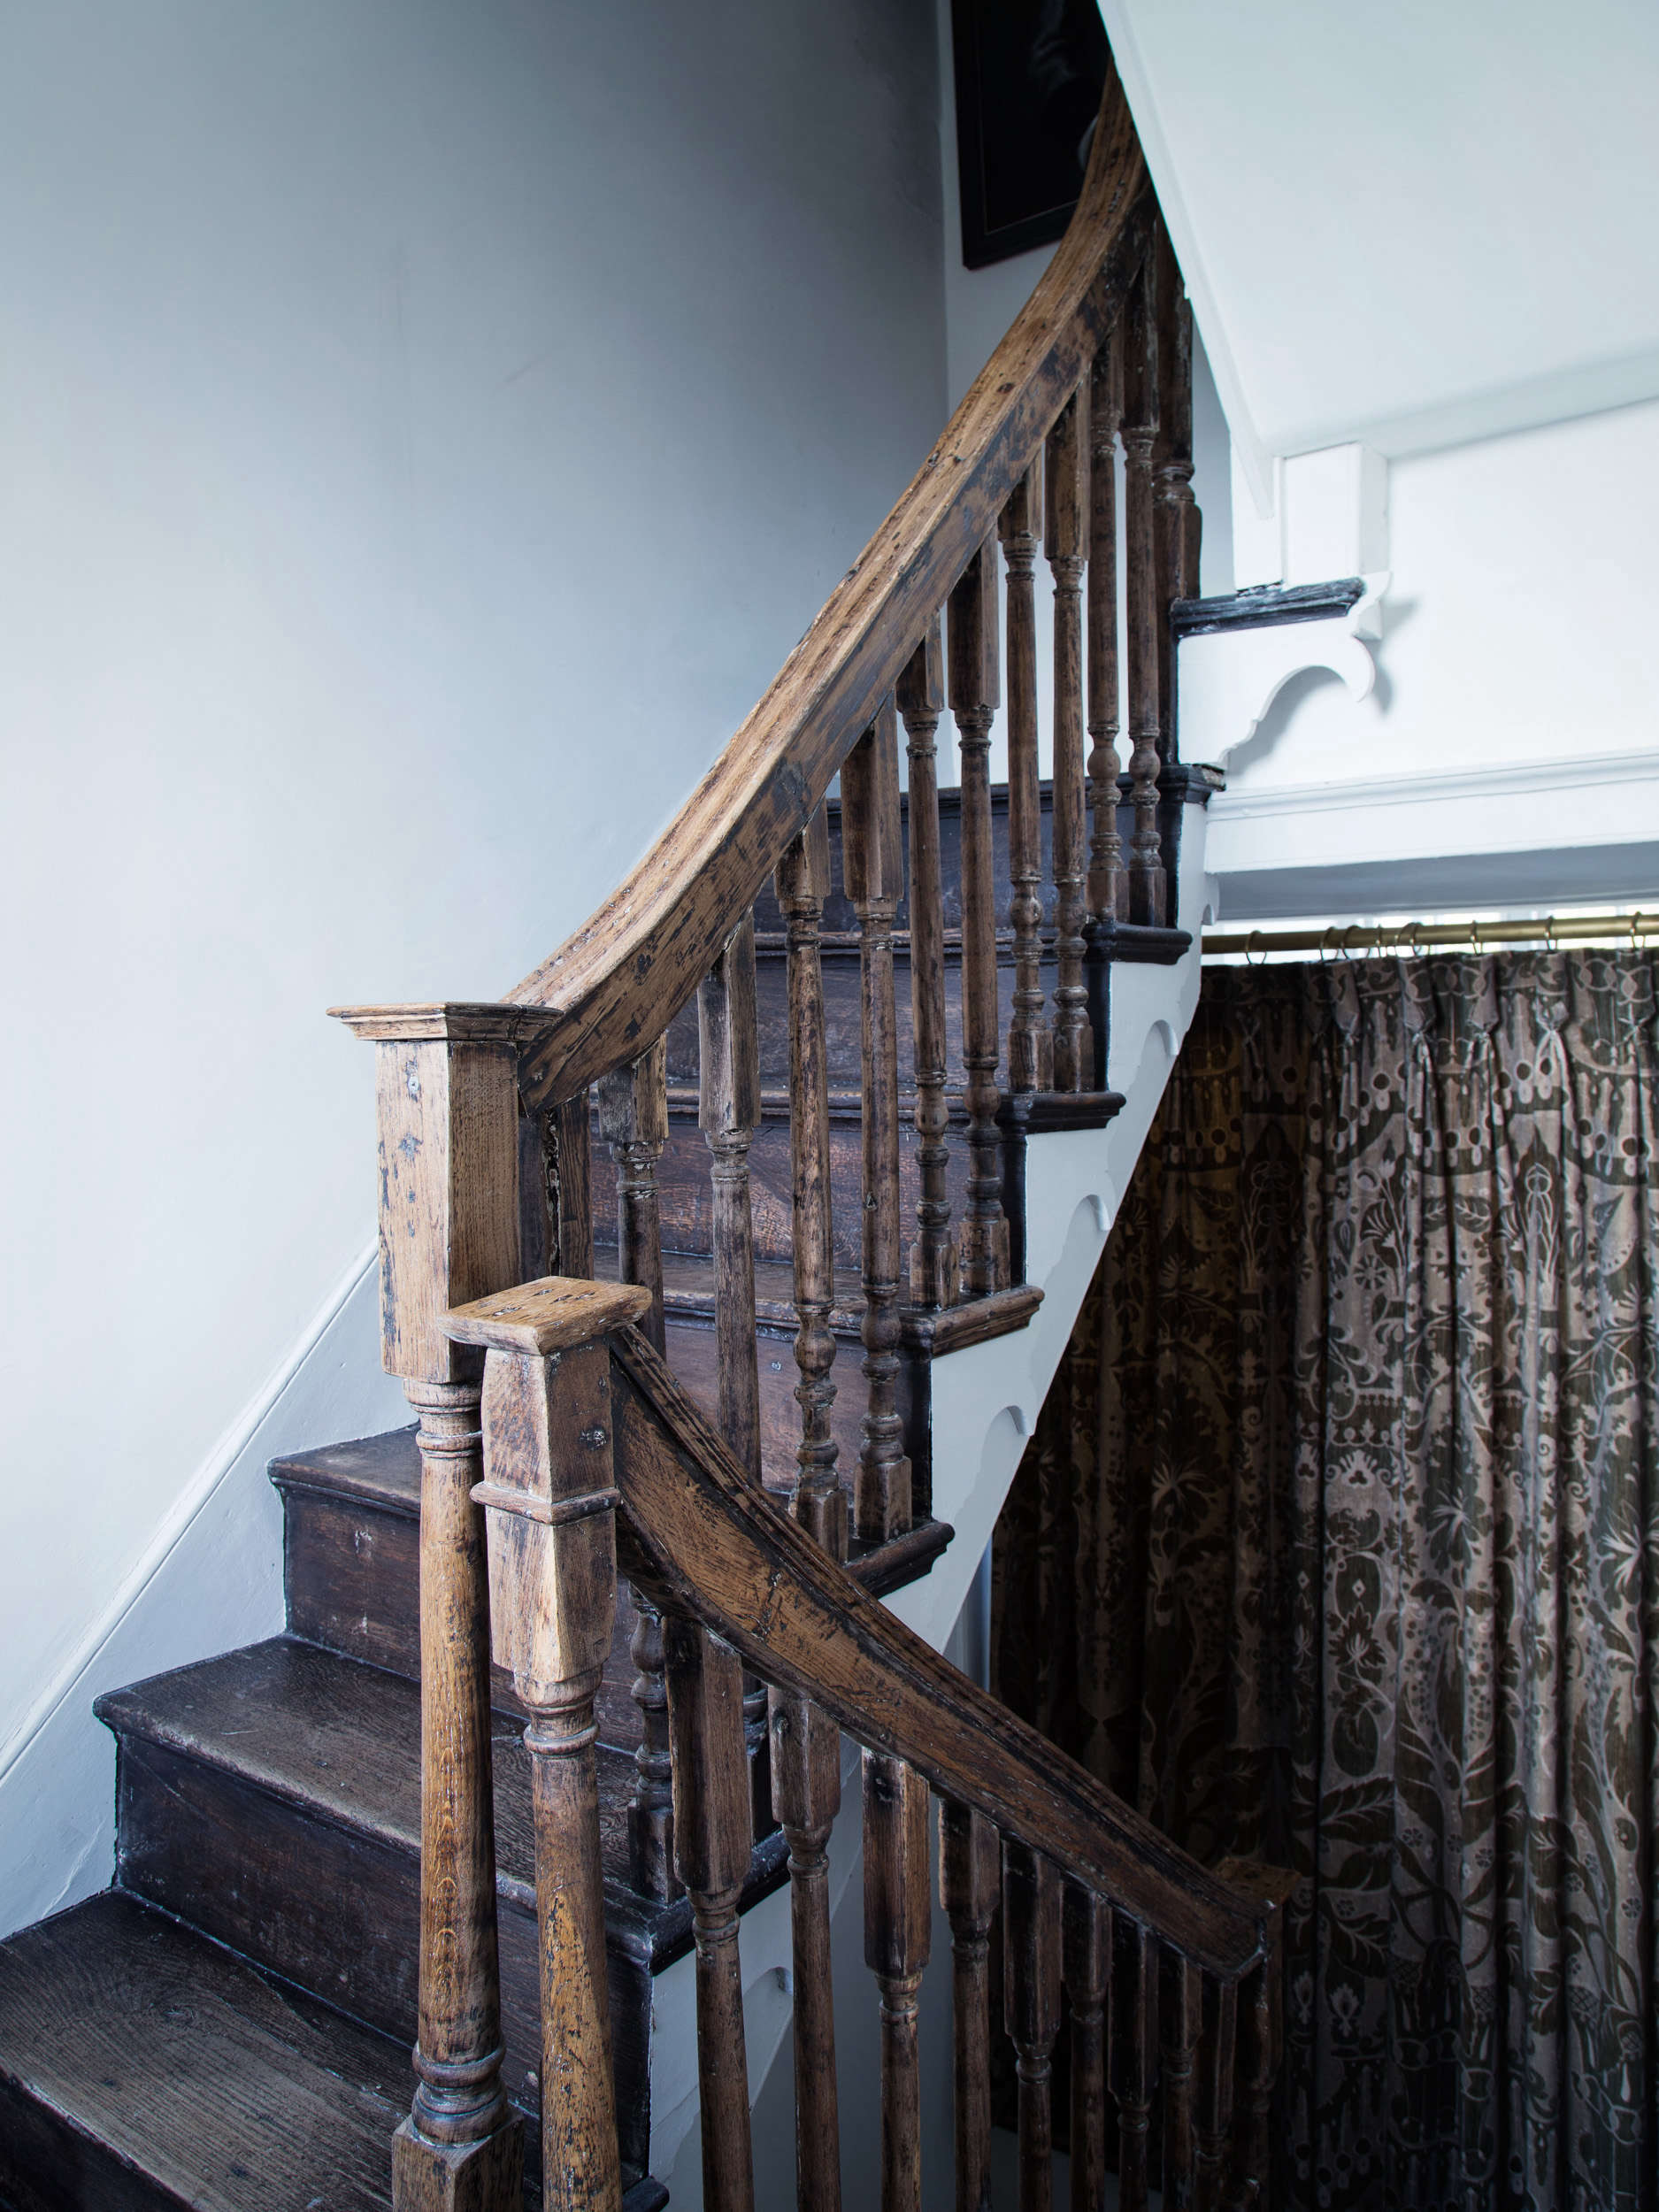 Stairwell in Blue Dorset House by Mark Lewis, Photo by Rory Gardiner